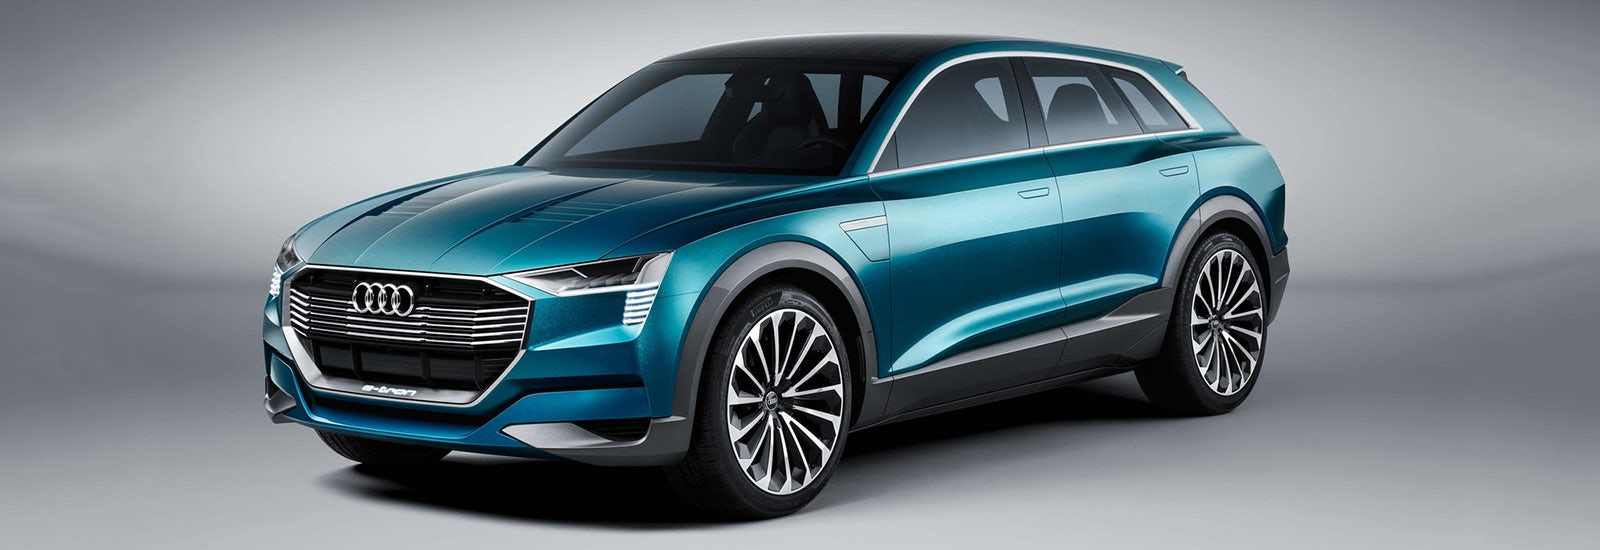 Audi Q6 e-tron price, specs and release date | carwow